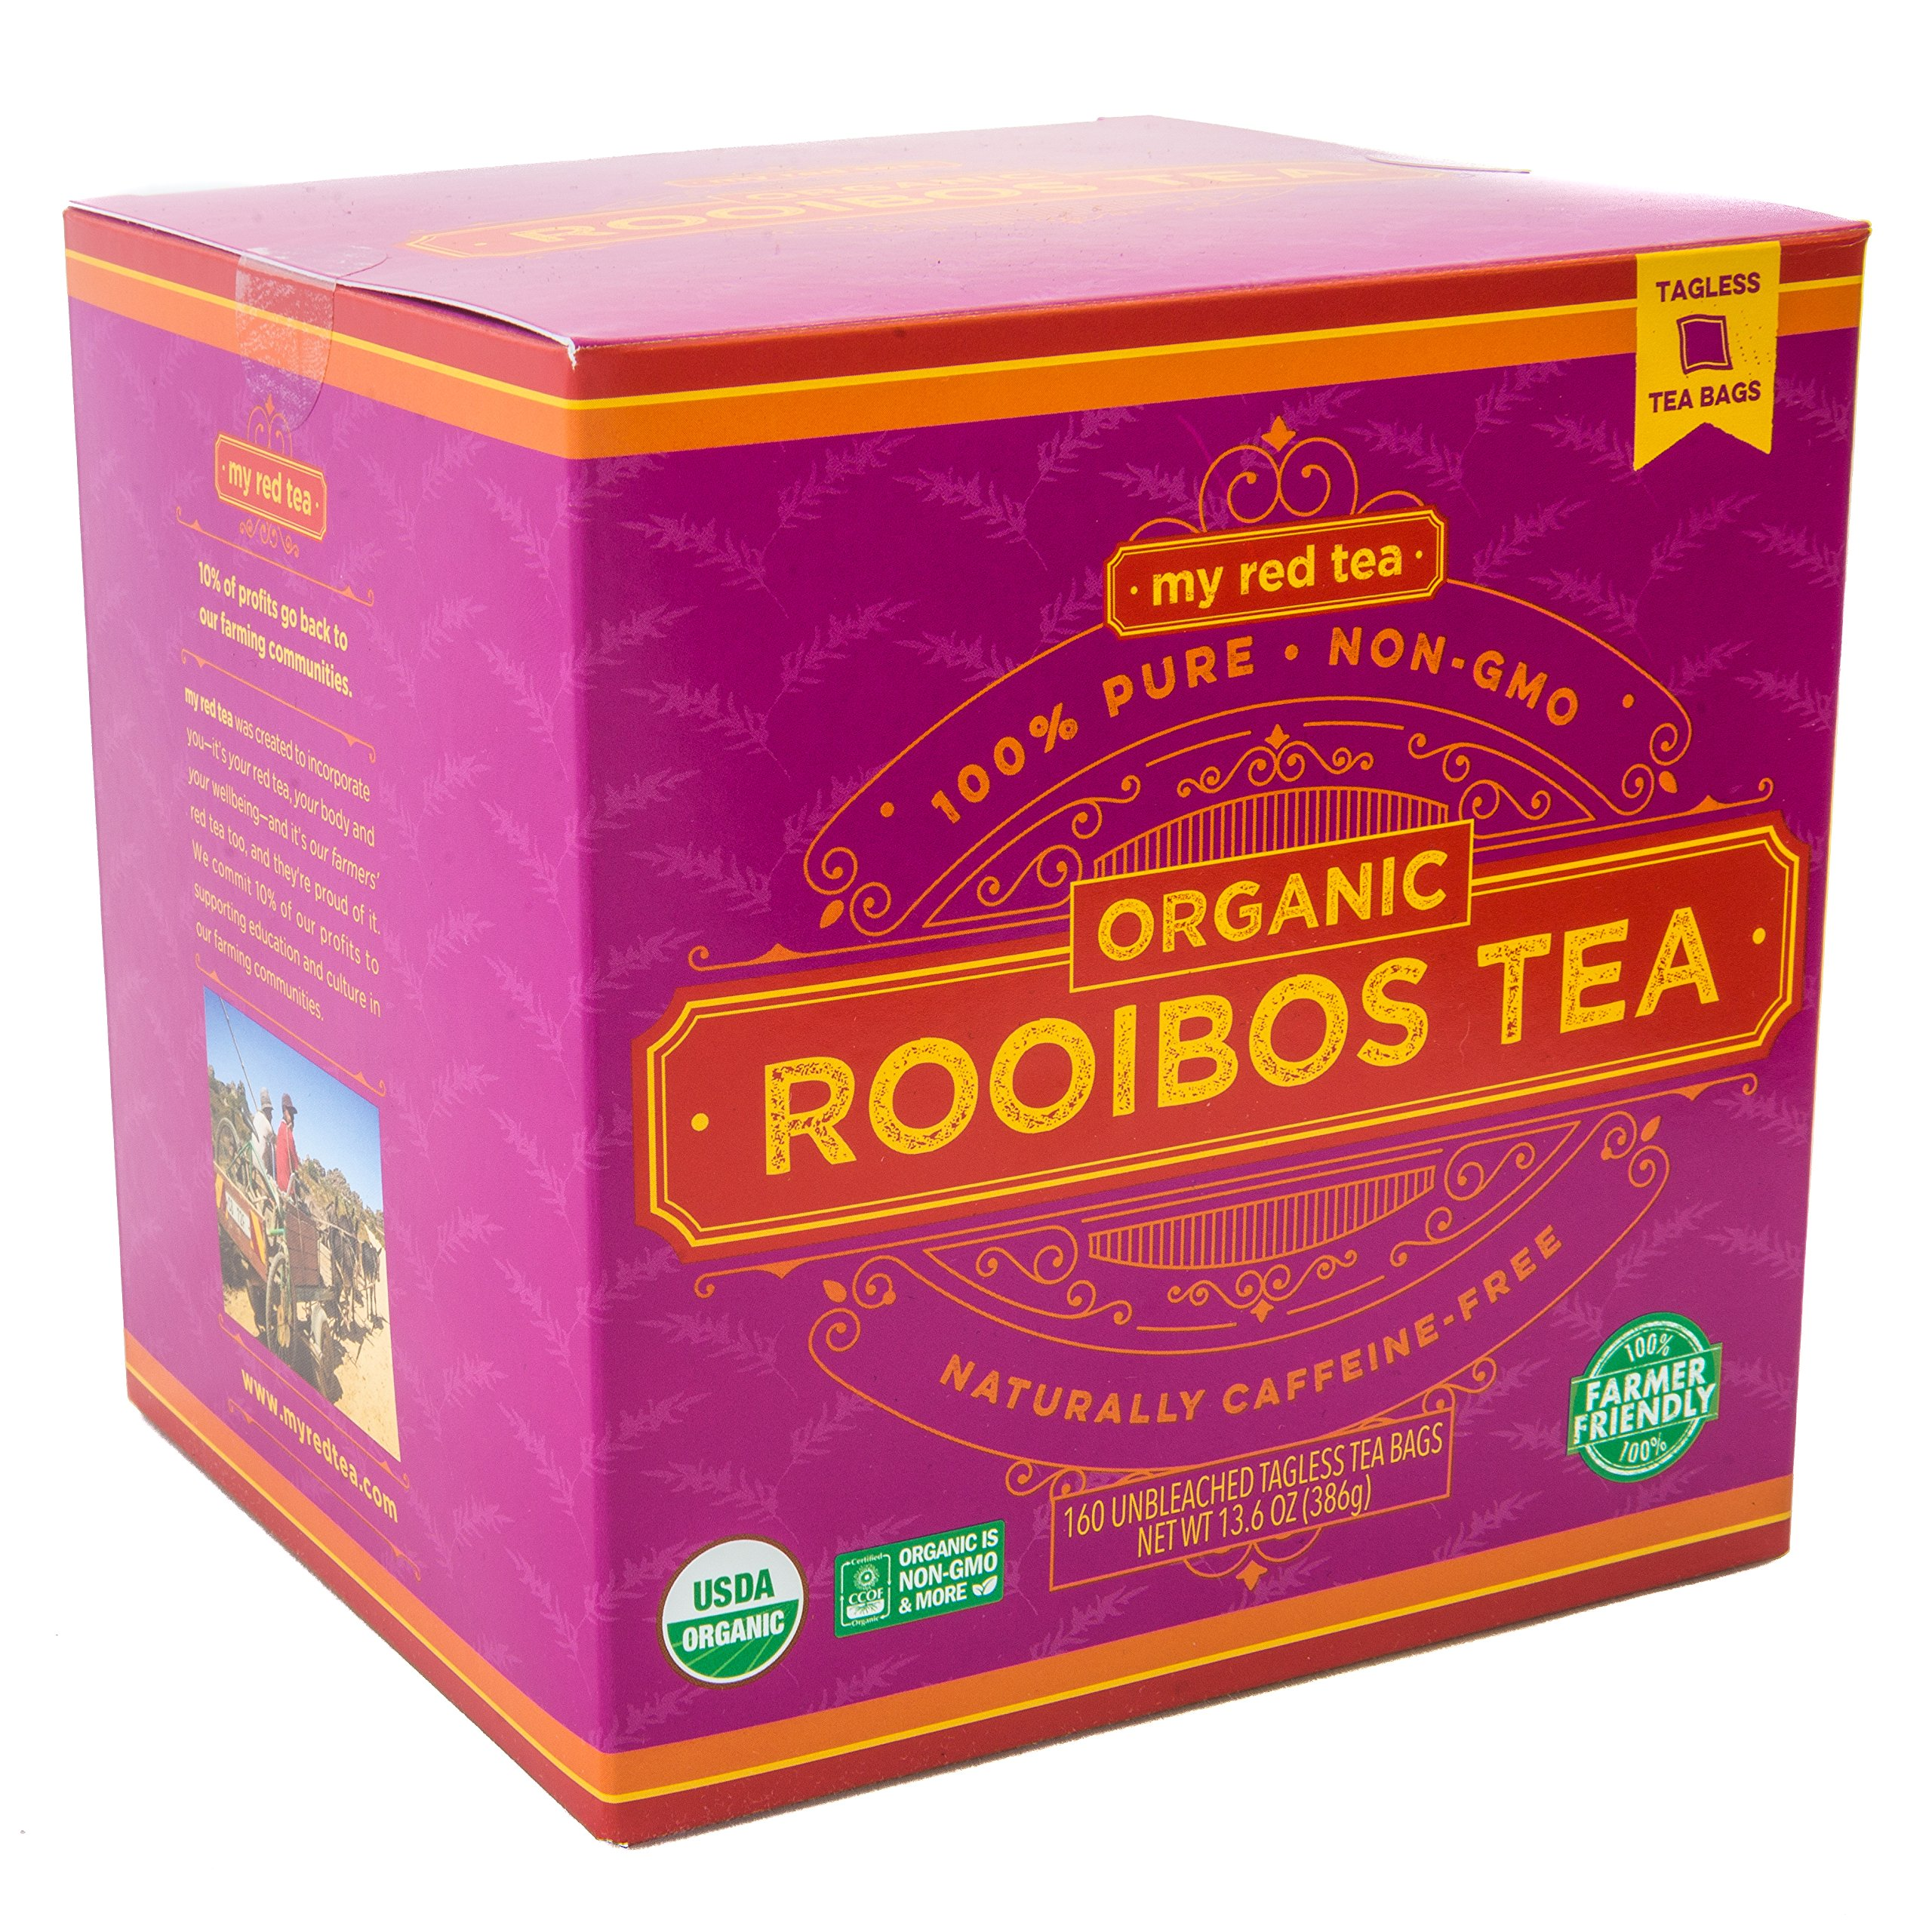 Rooibos Tea, USDA Certified Organic Tea, MY RED TEA. Tagless South African, 100% Pure, Single Origin, Natural, Farmer Friendly, GMO and Caffeine Free (160 Teabag) by My Red Tea